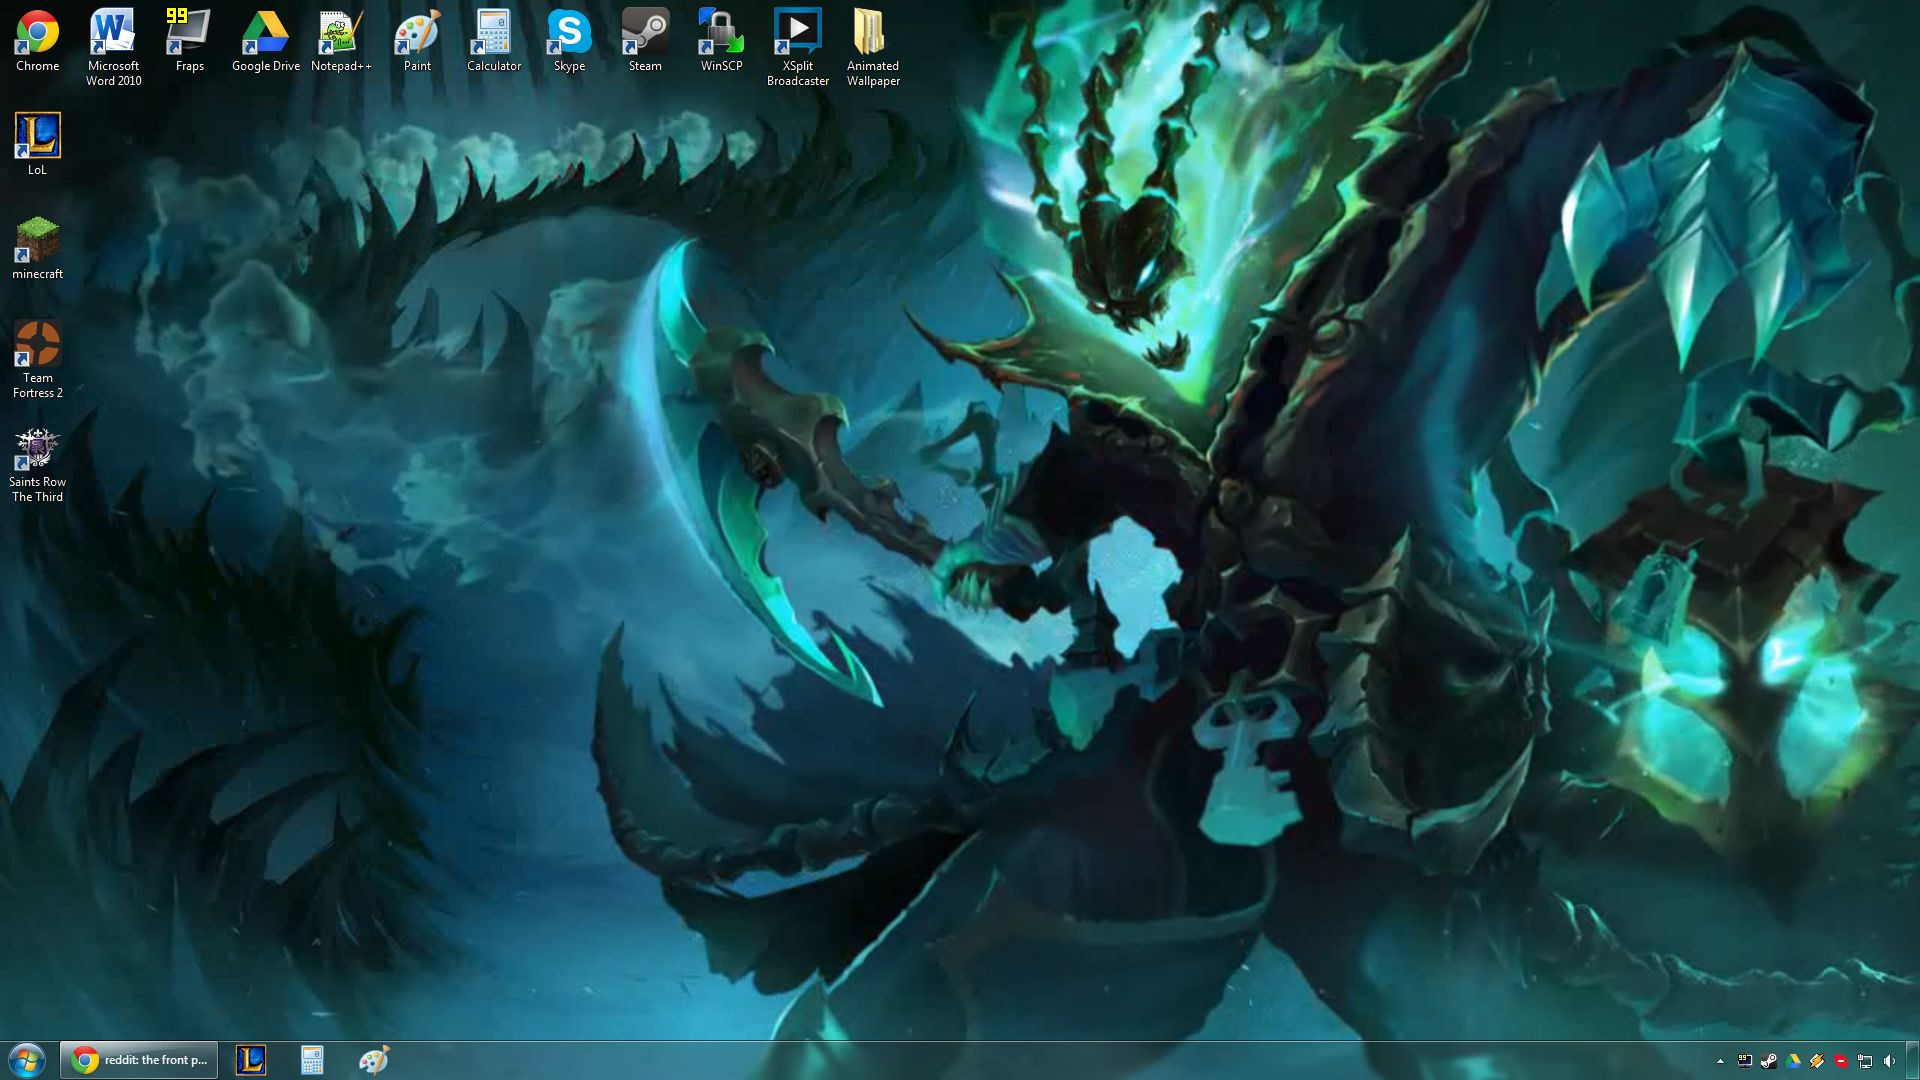 Download league of legends wallpaper animated gallery - Anime moving wallpaper for pc ...